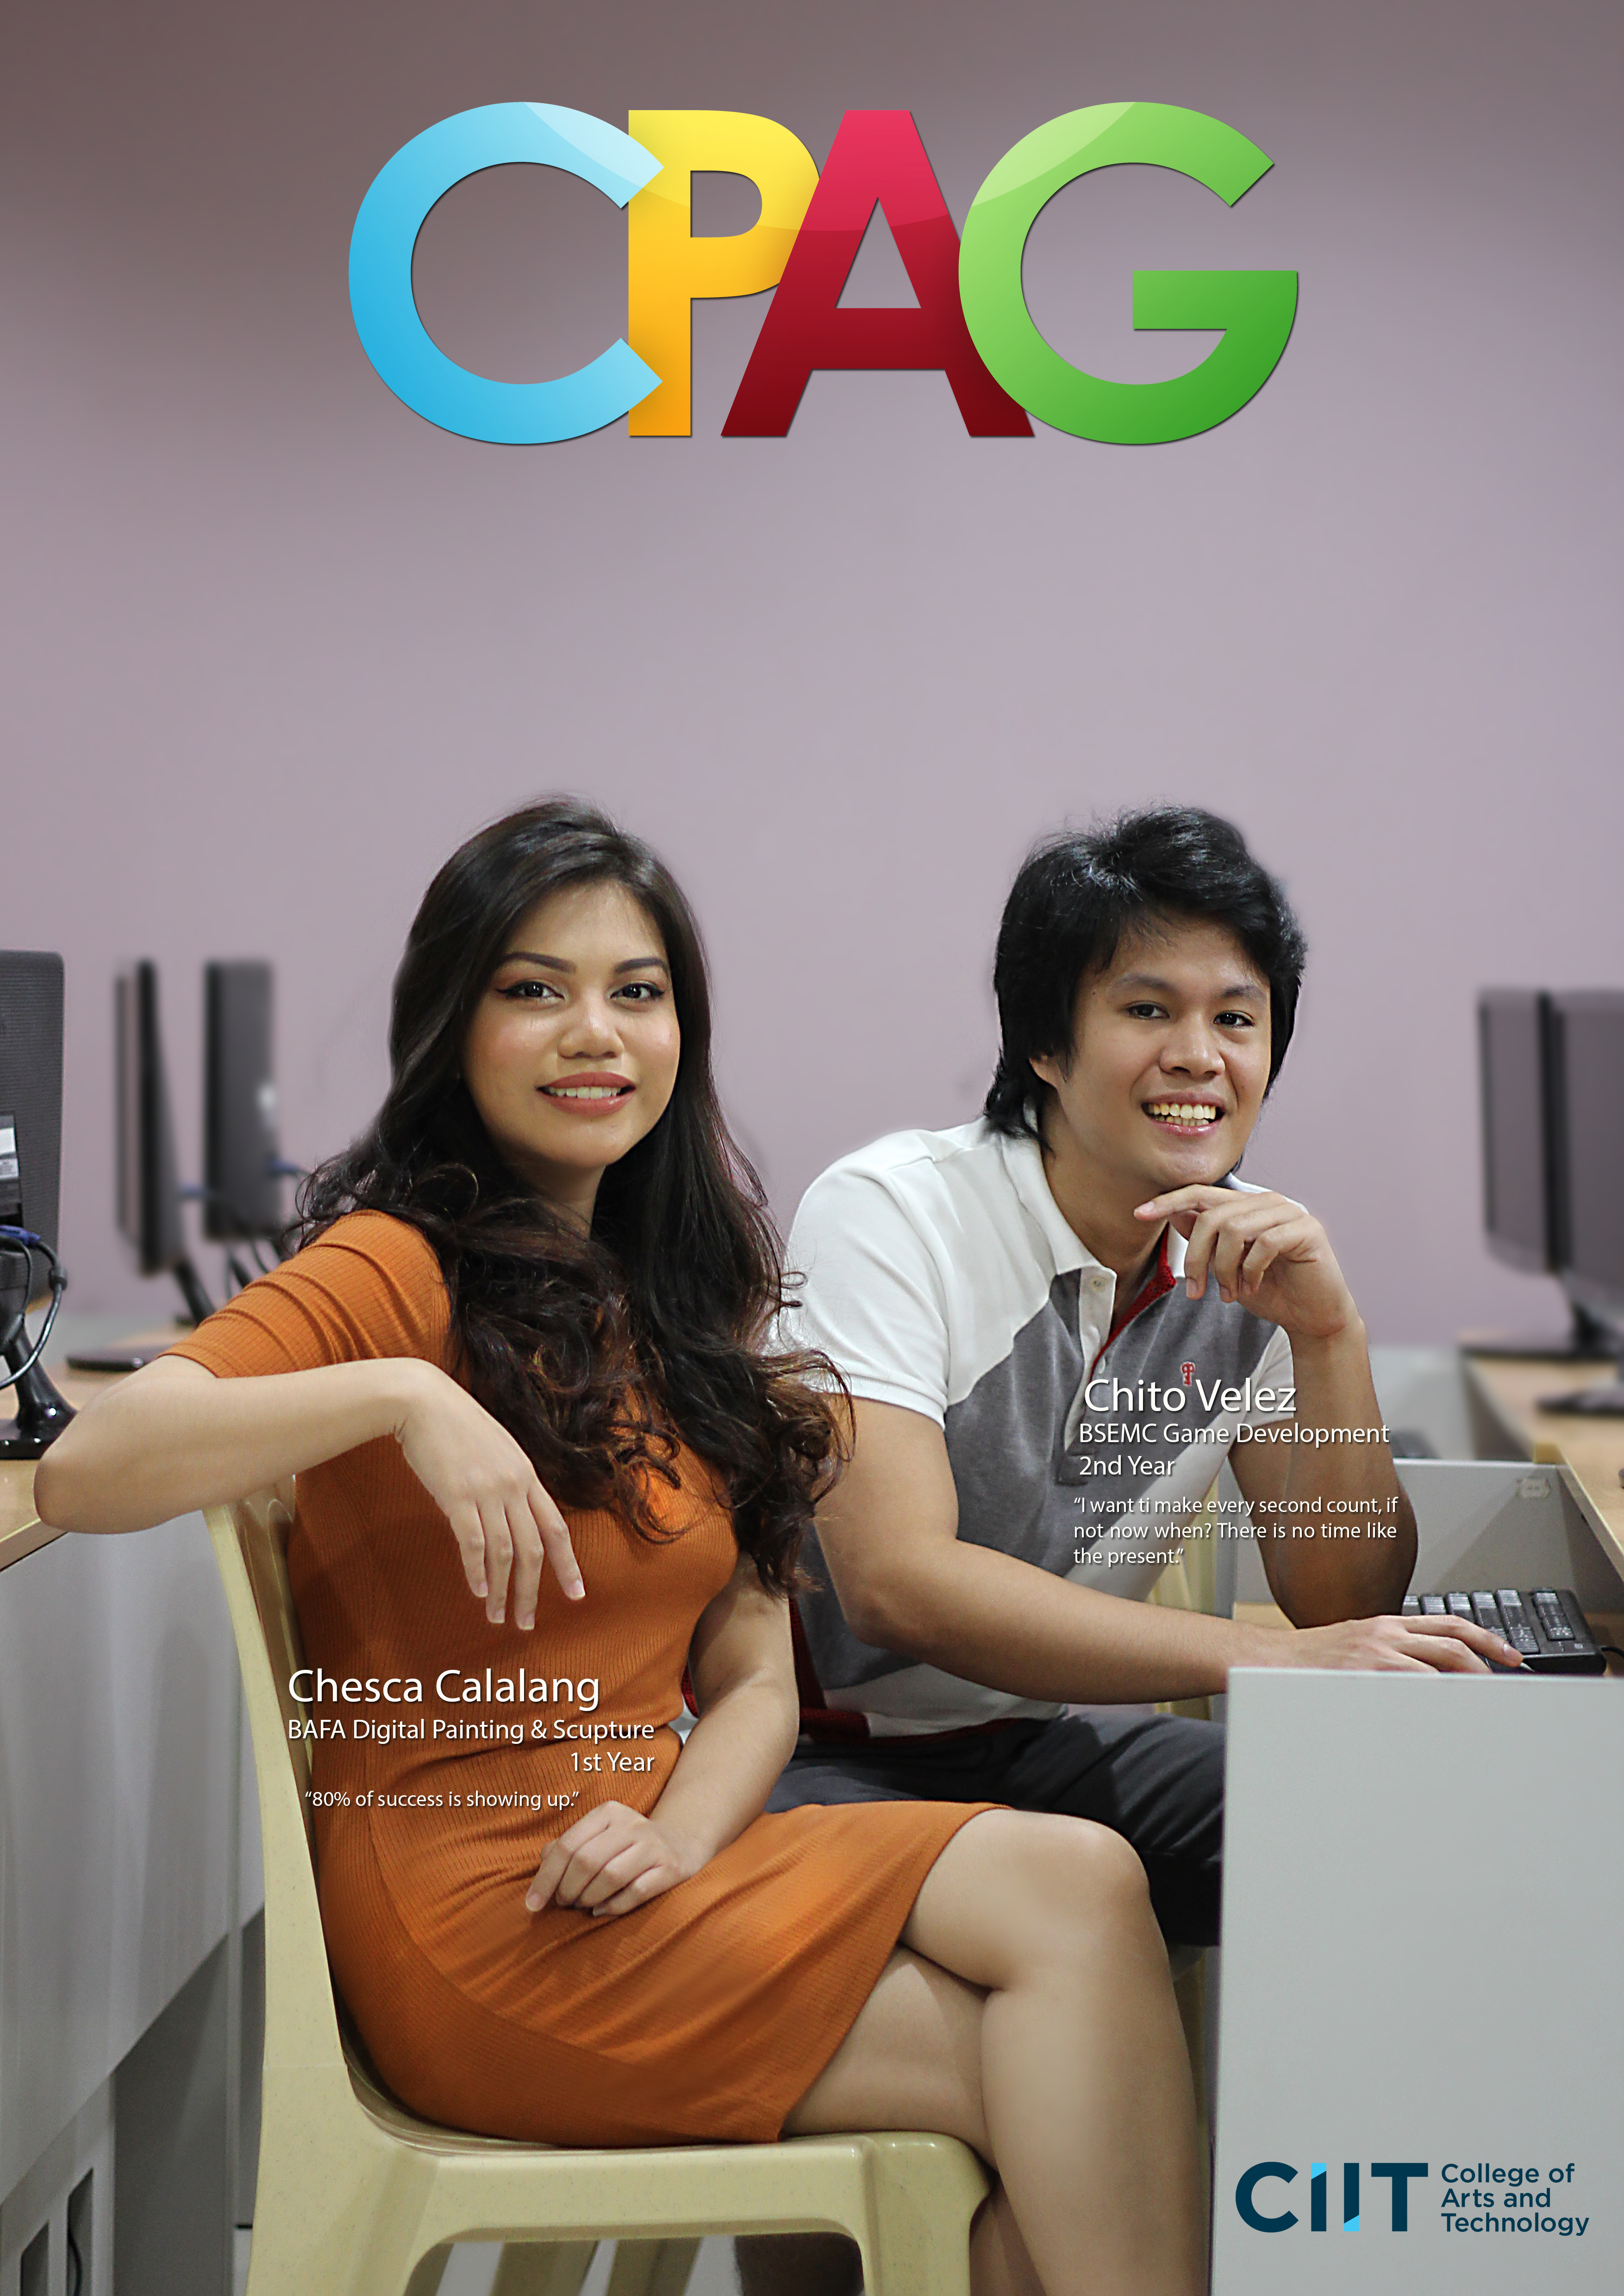 cpag campaign: students at the computer room